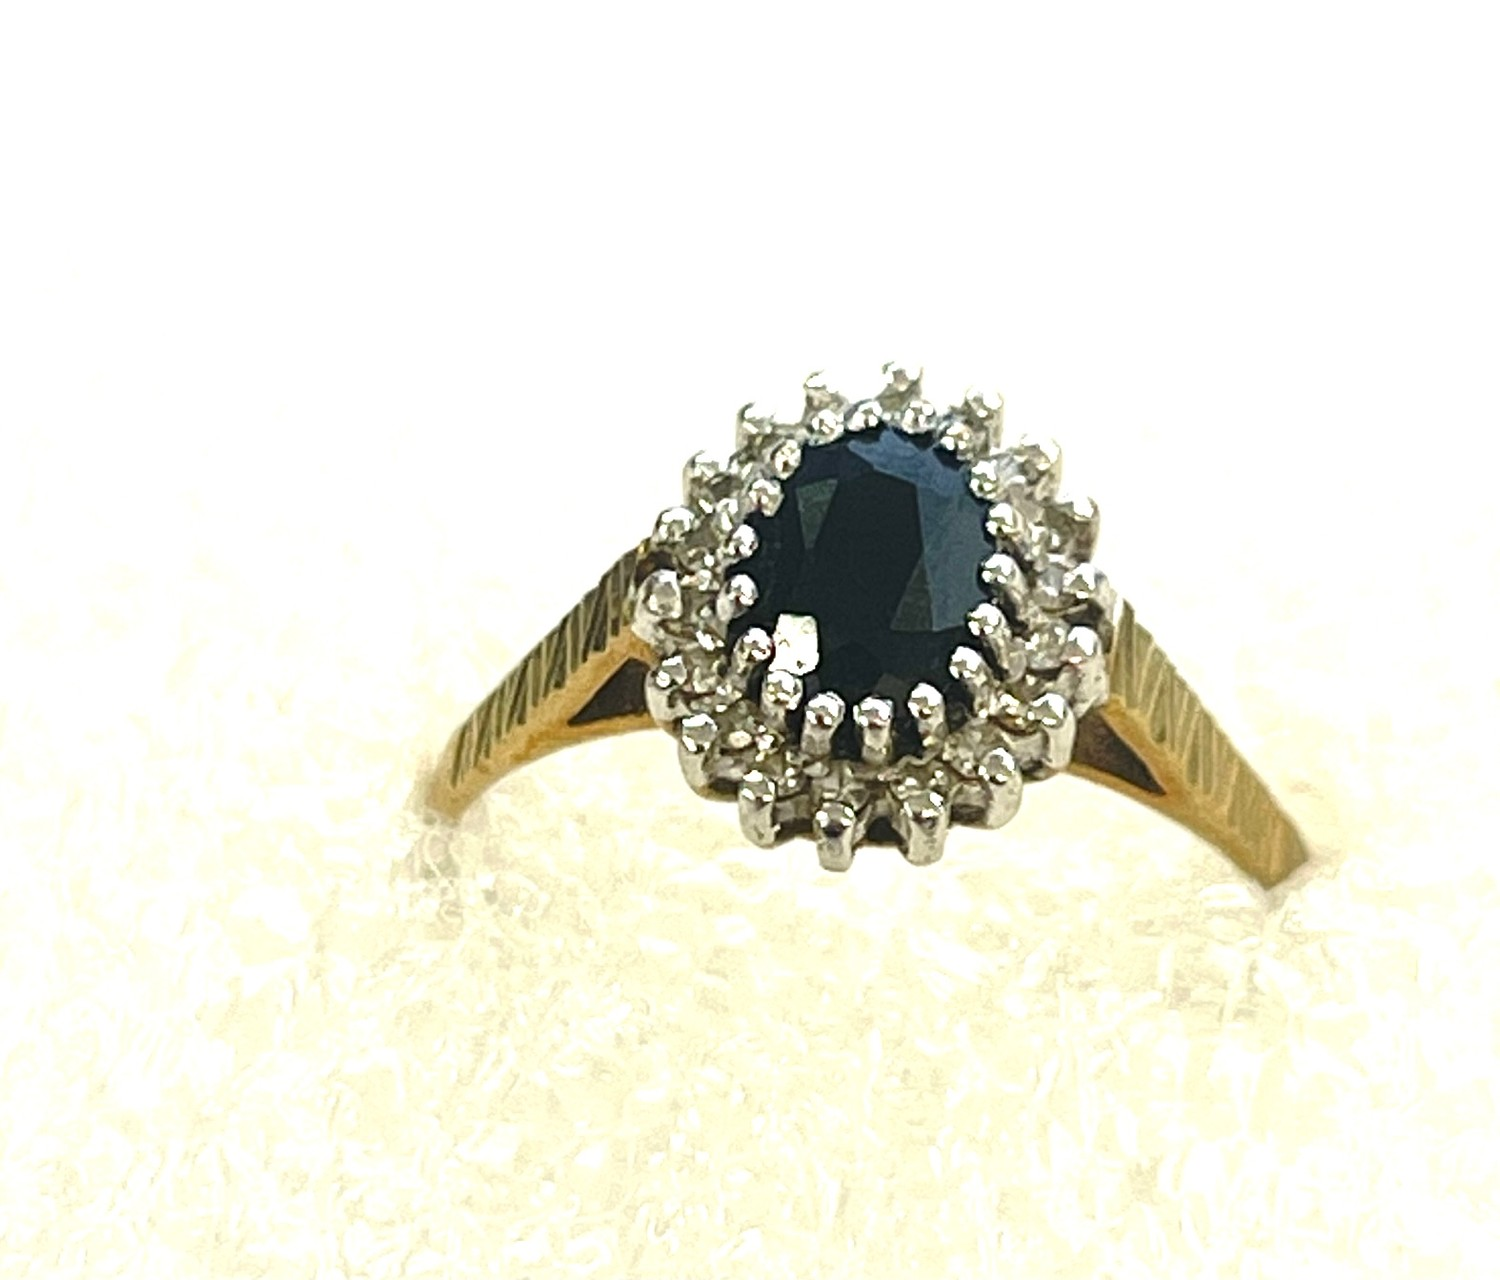 9ct Gold diamond & sapphire cluster ring - Image 2 of 3